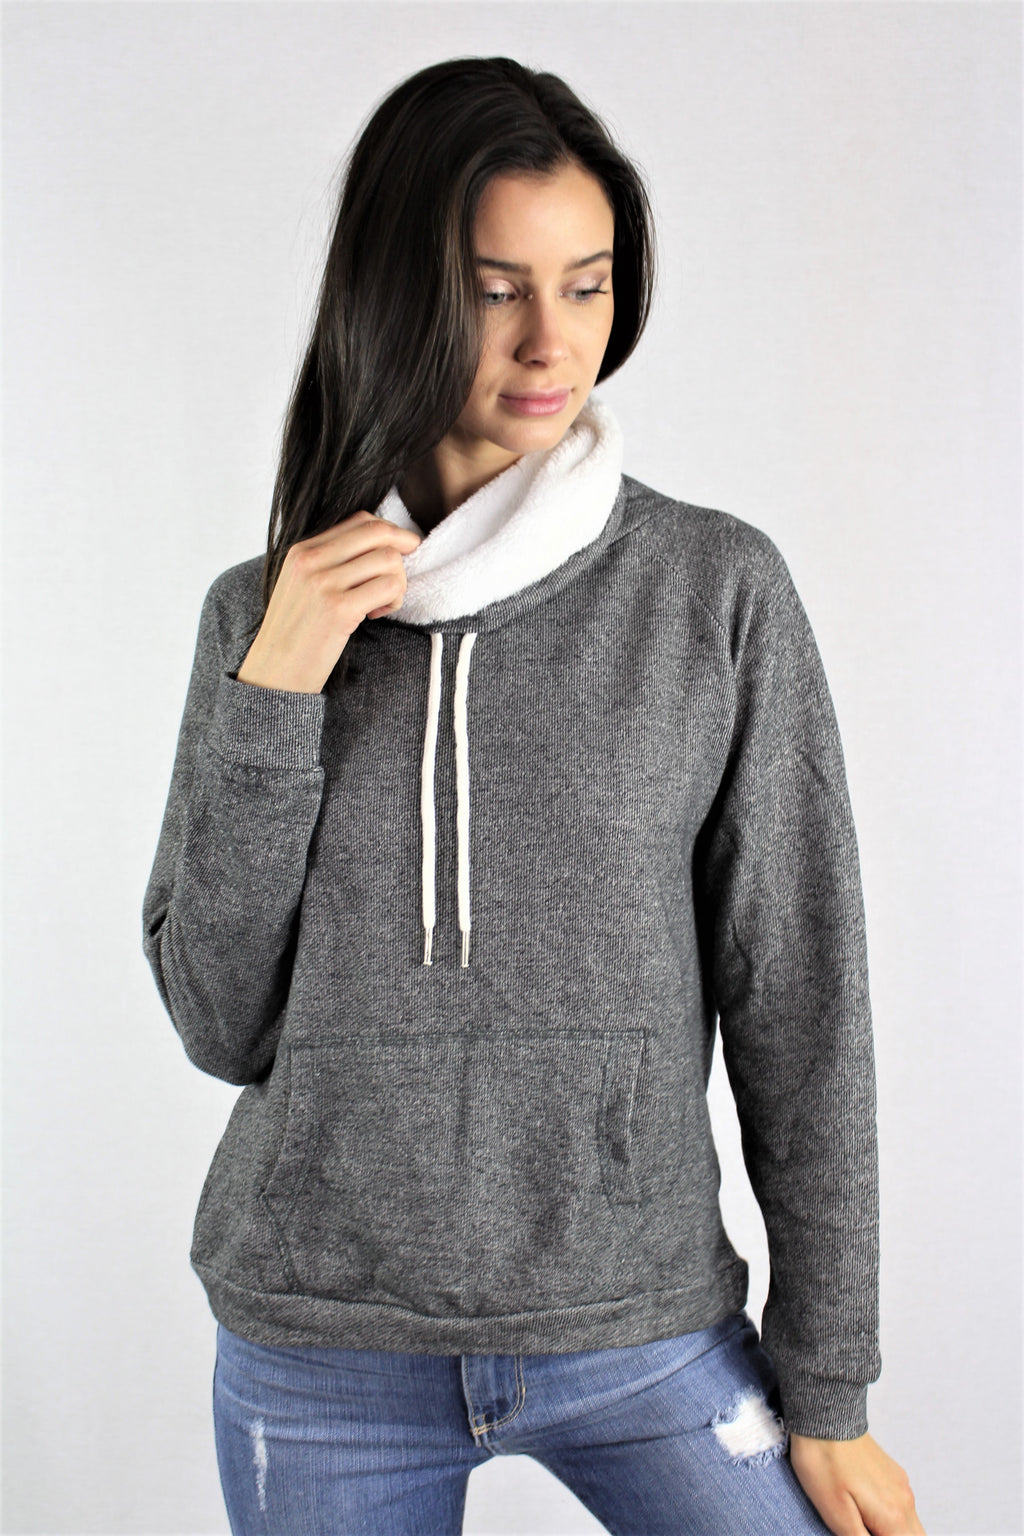 Cowl Neck Long Sleeves Sweater with Front Pocket